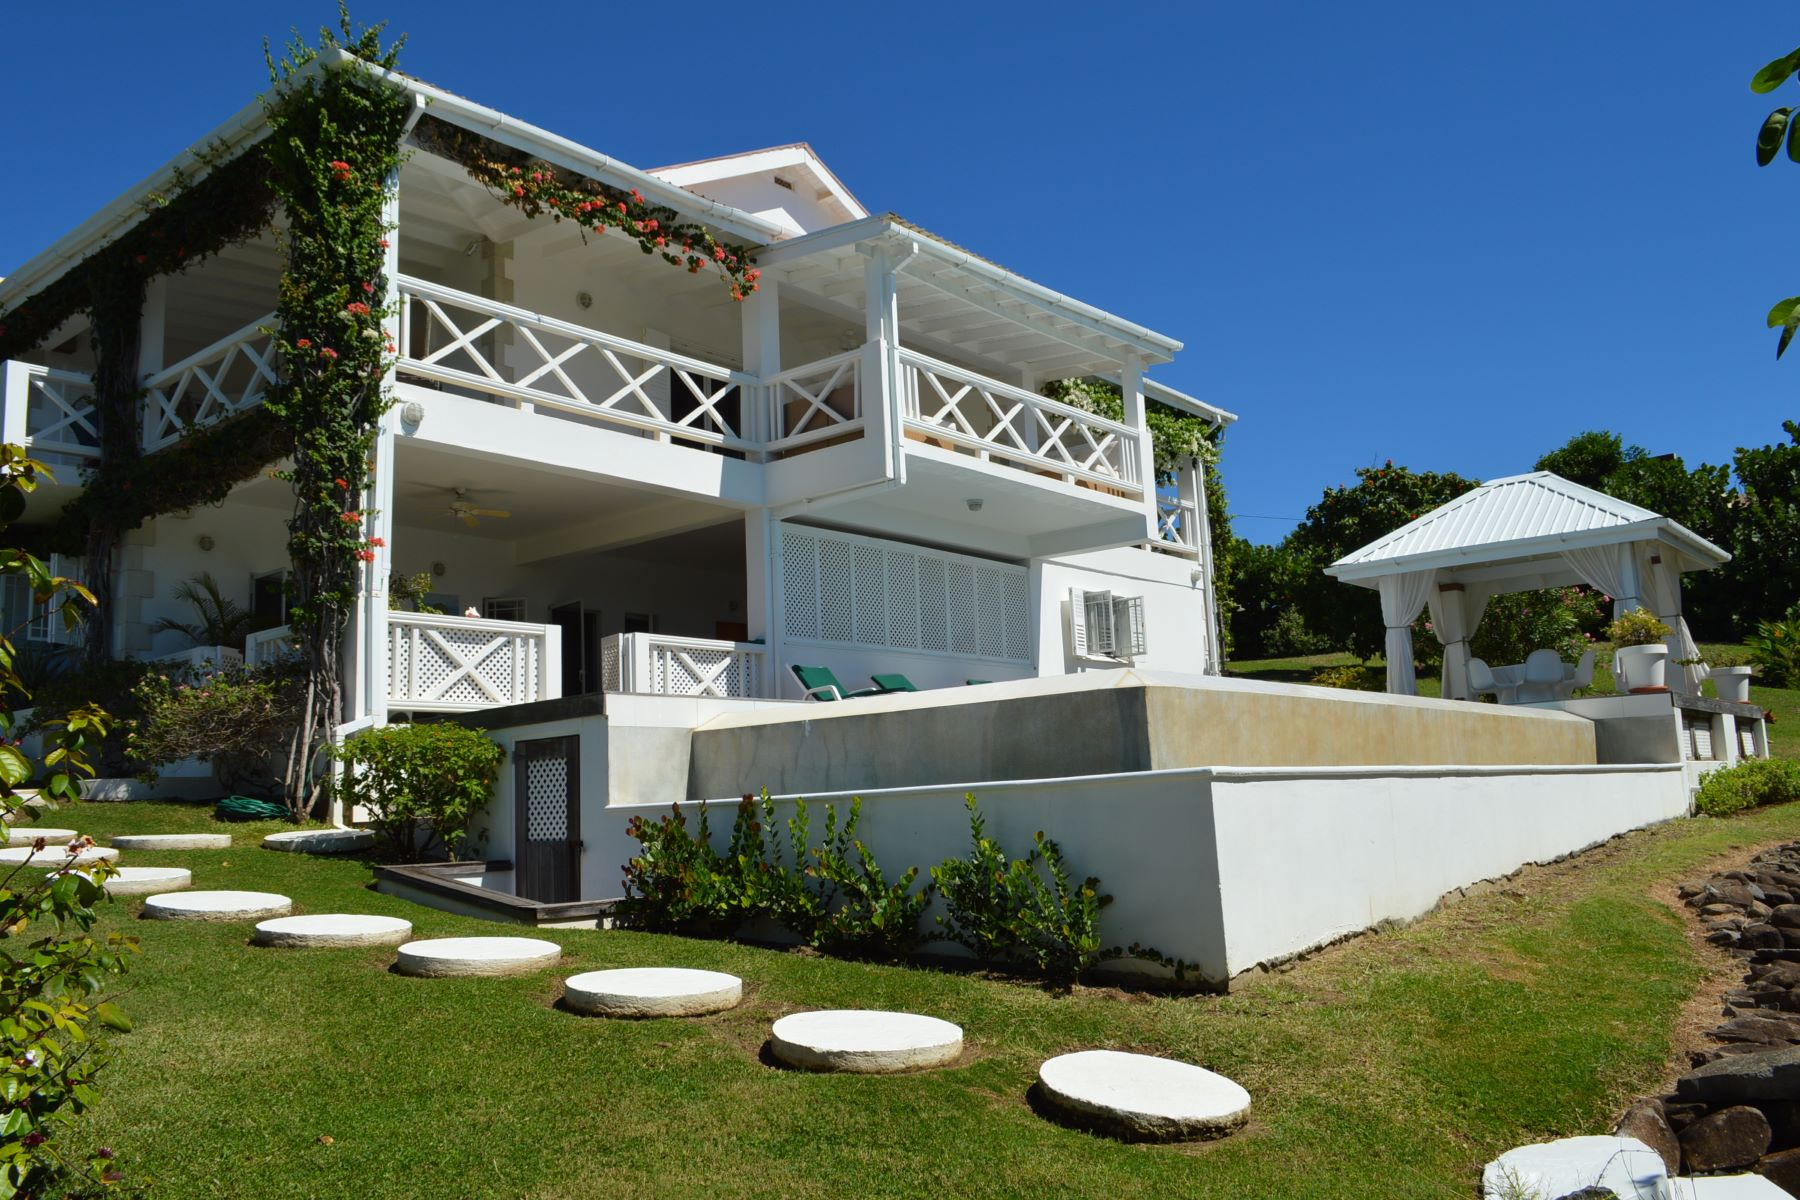 Single Family Home for Sale at Pirates Cove St Vincent, Saint Vincent And The Grenadines